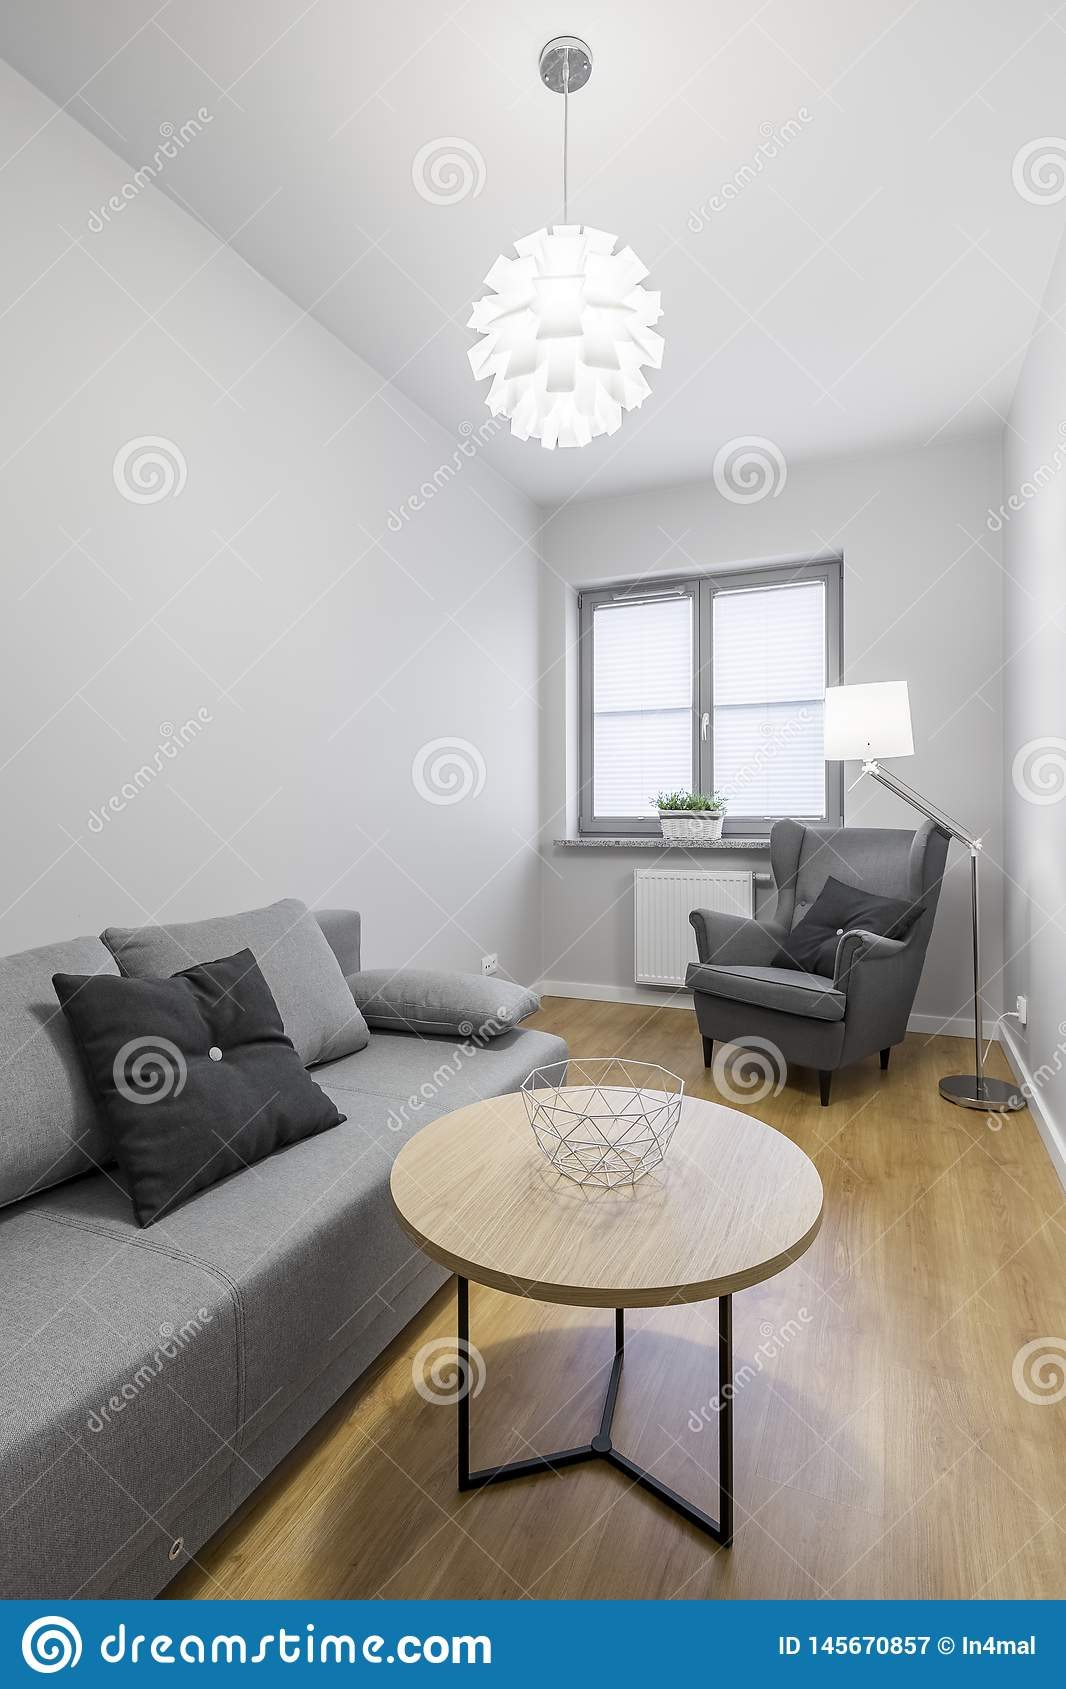 Cozy Grey Room With Sofa Stock Image Image Of Architecture 145670857